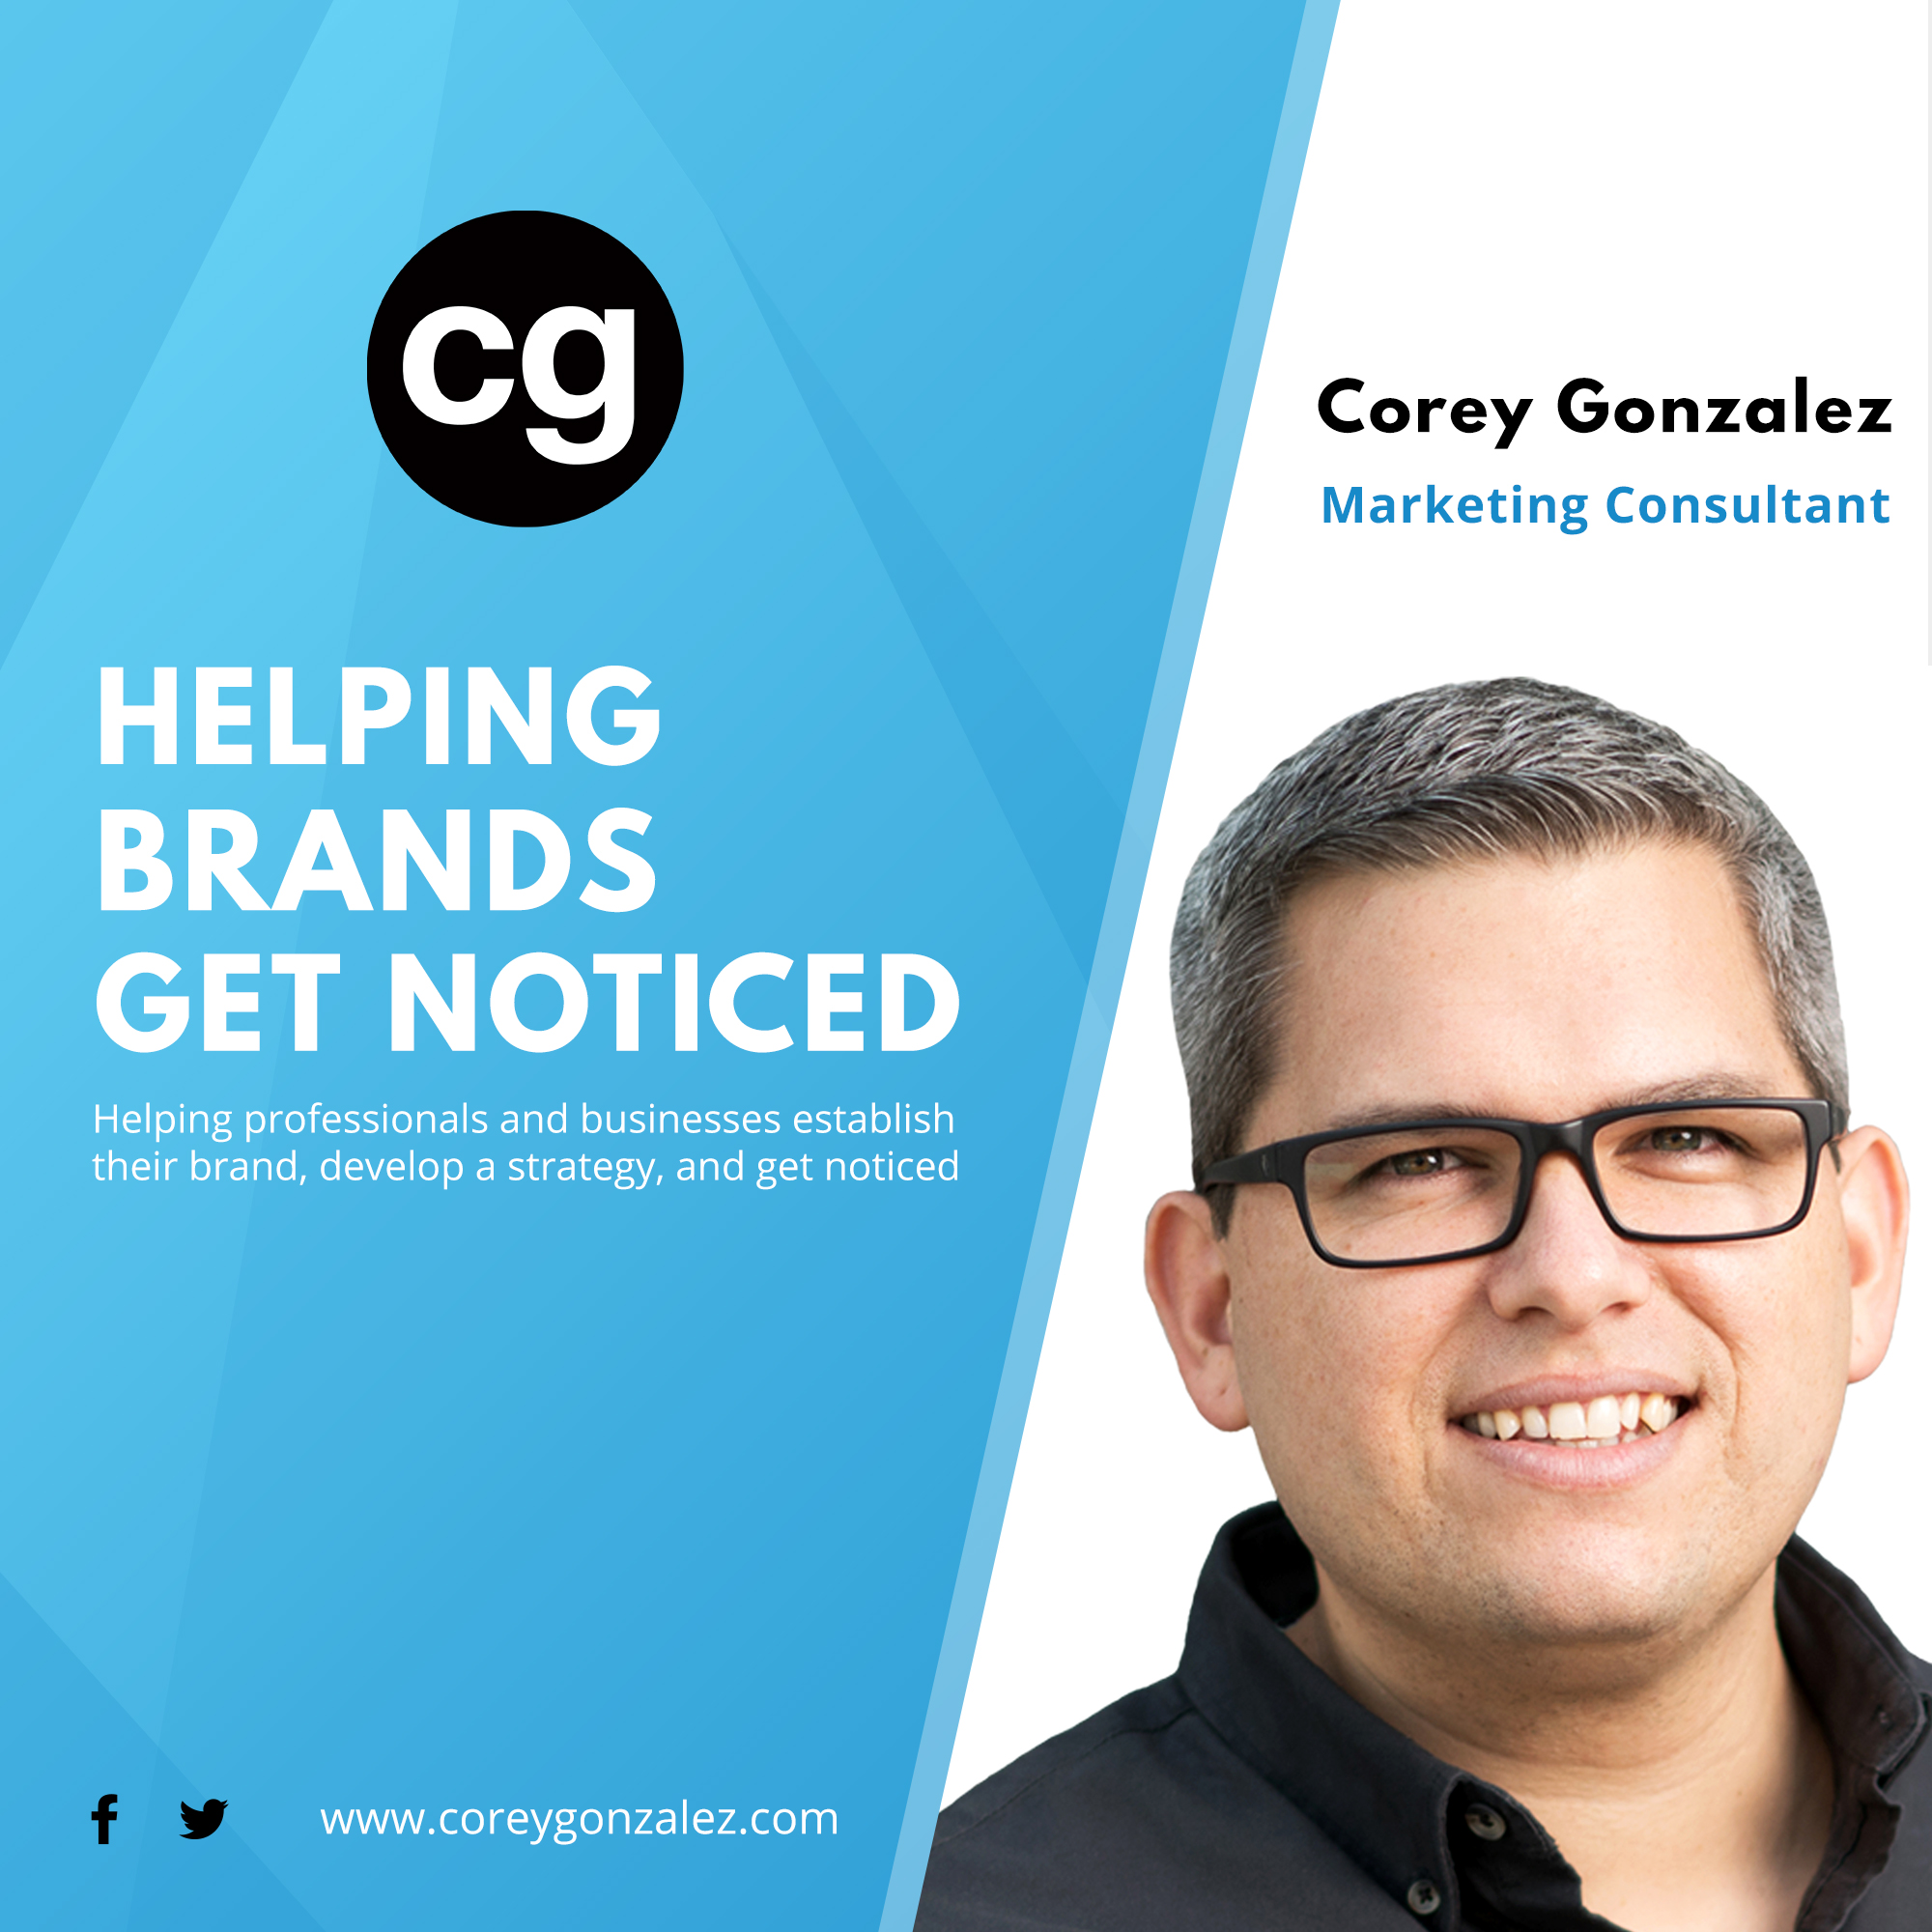 Get Noticed with Corey Gonzalez